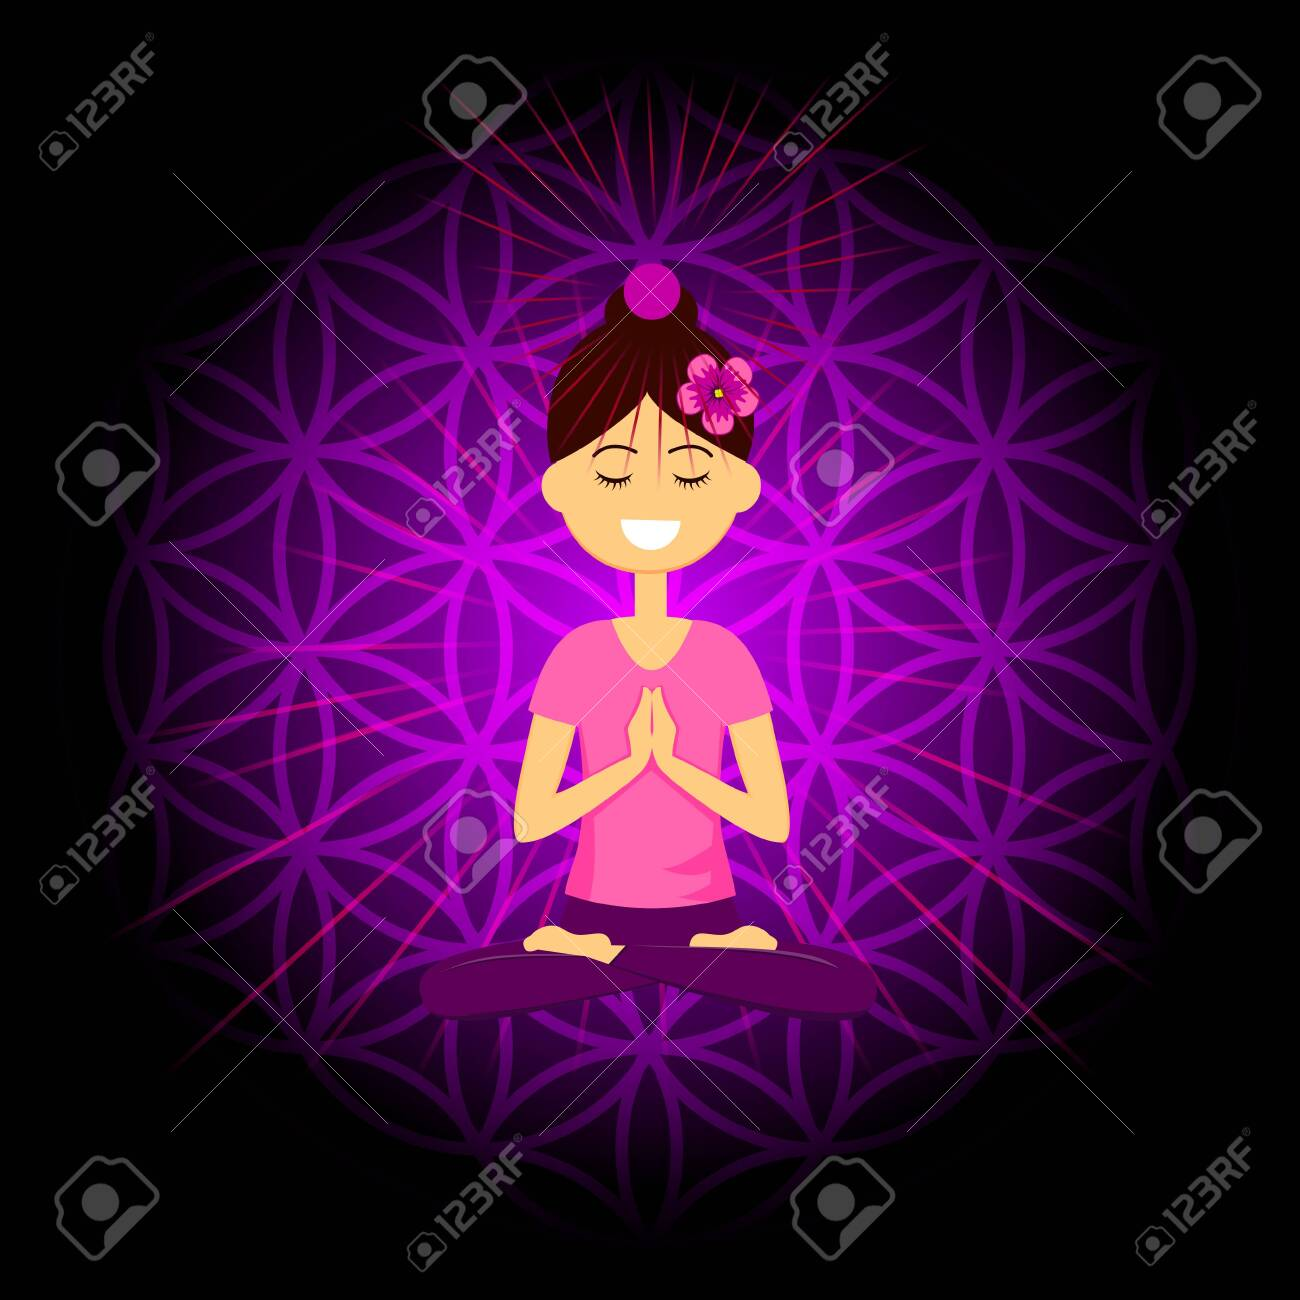 Cartoon character smiling woman is sitting in lotus position with namaste hands. Sahasrara chakra activation. Vector illustration. - 153295213